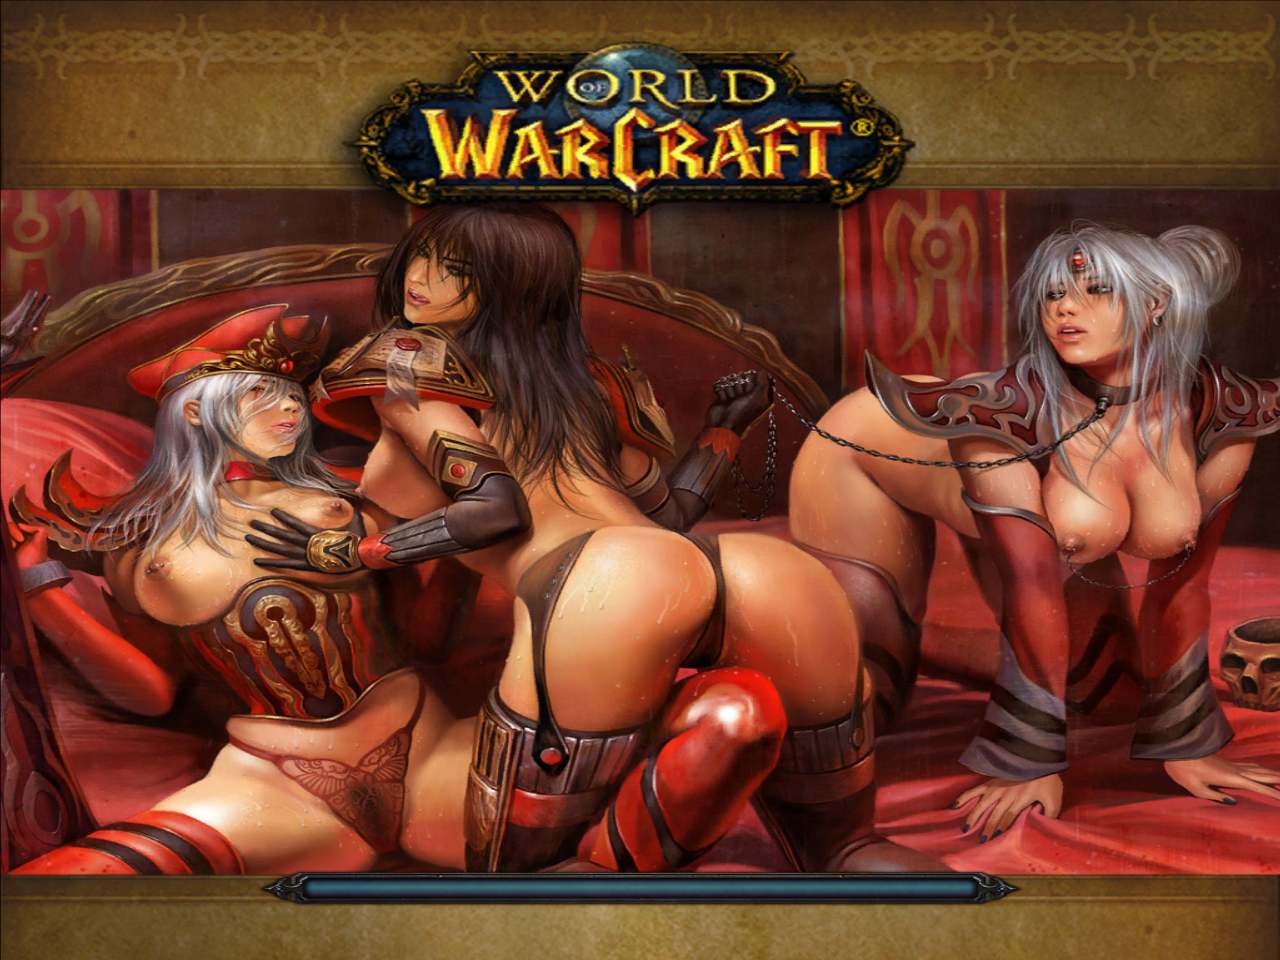 Nude patch world warcraft xxx picture